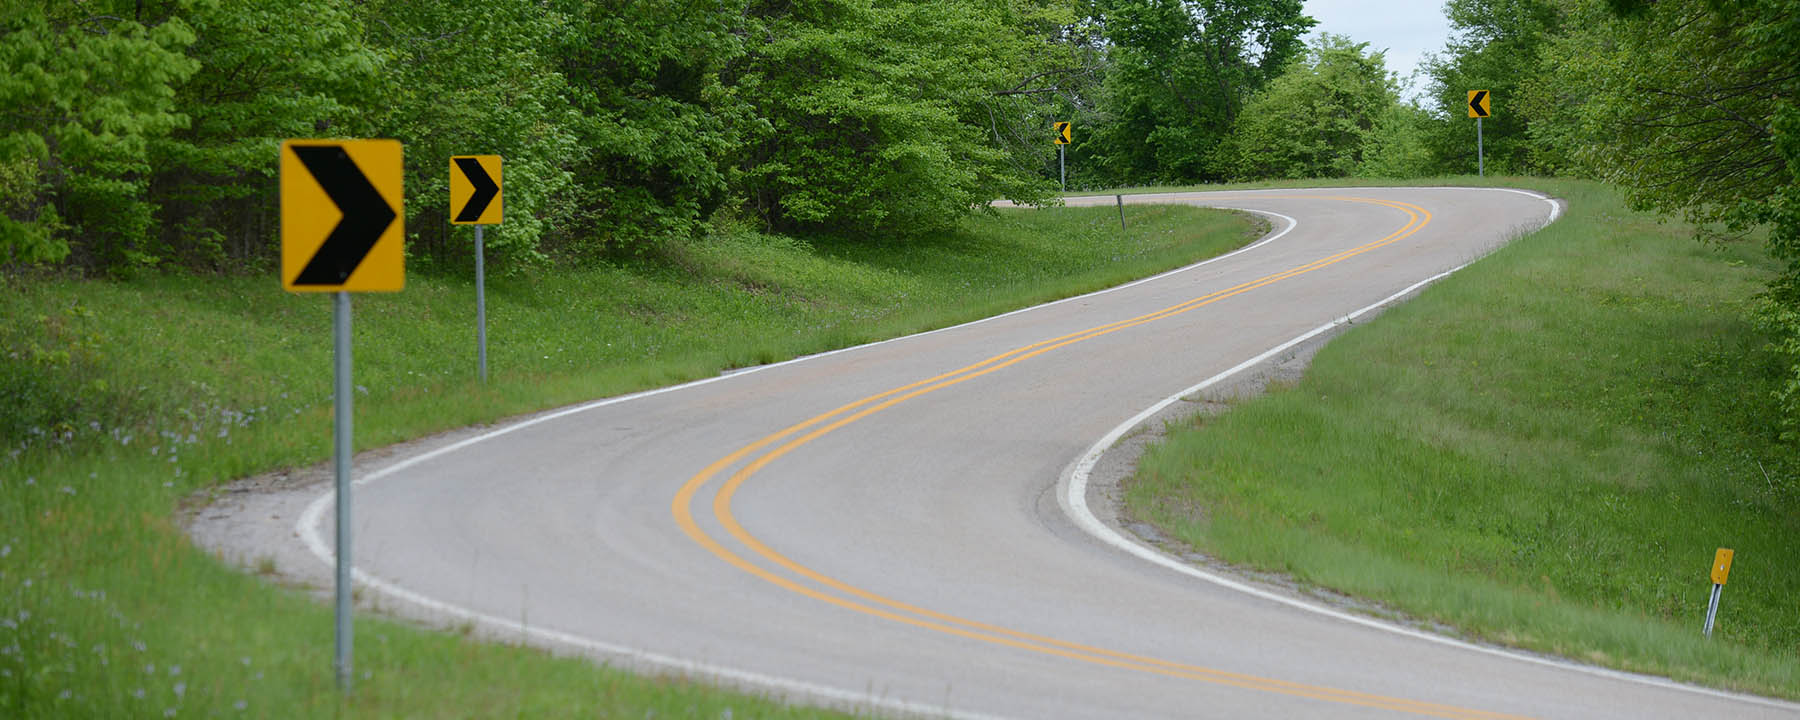 Arkansas-Good-Roads-Foundation-Image-News-Reviews